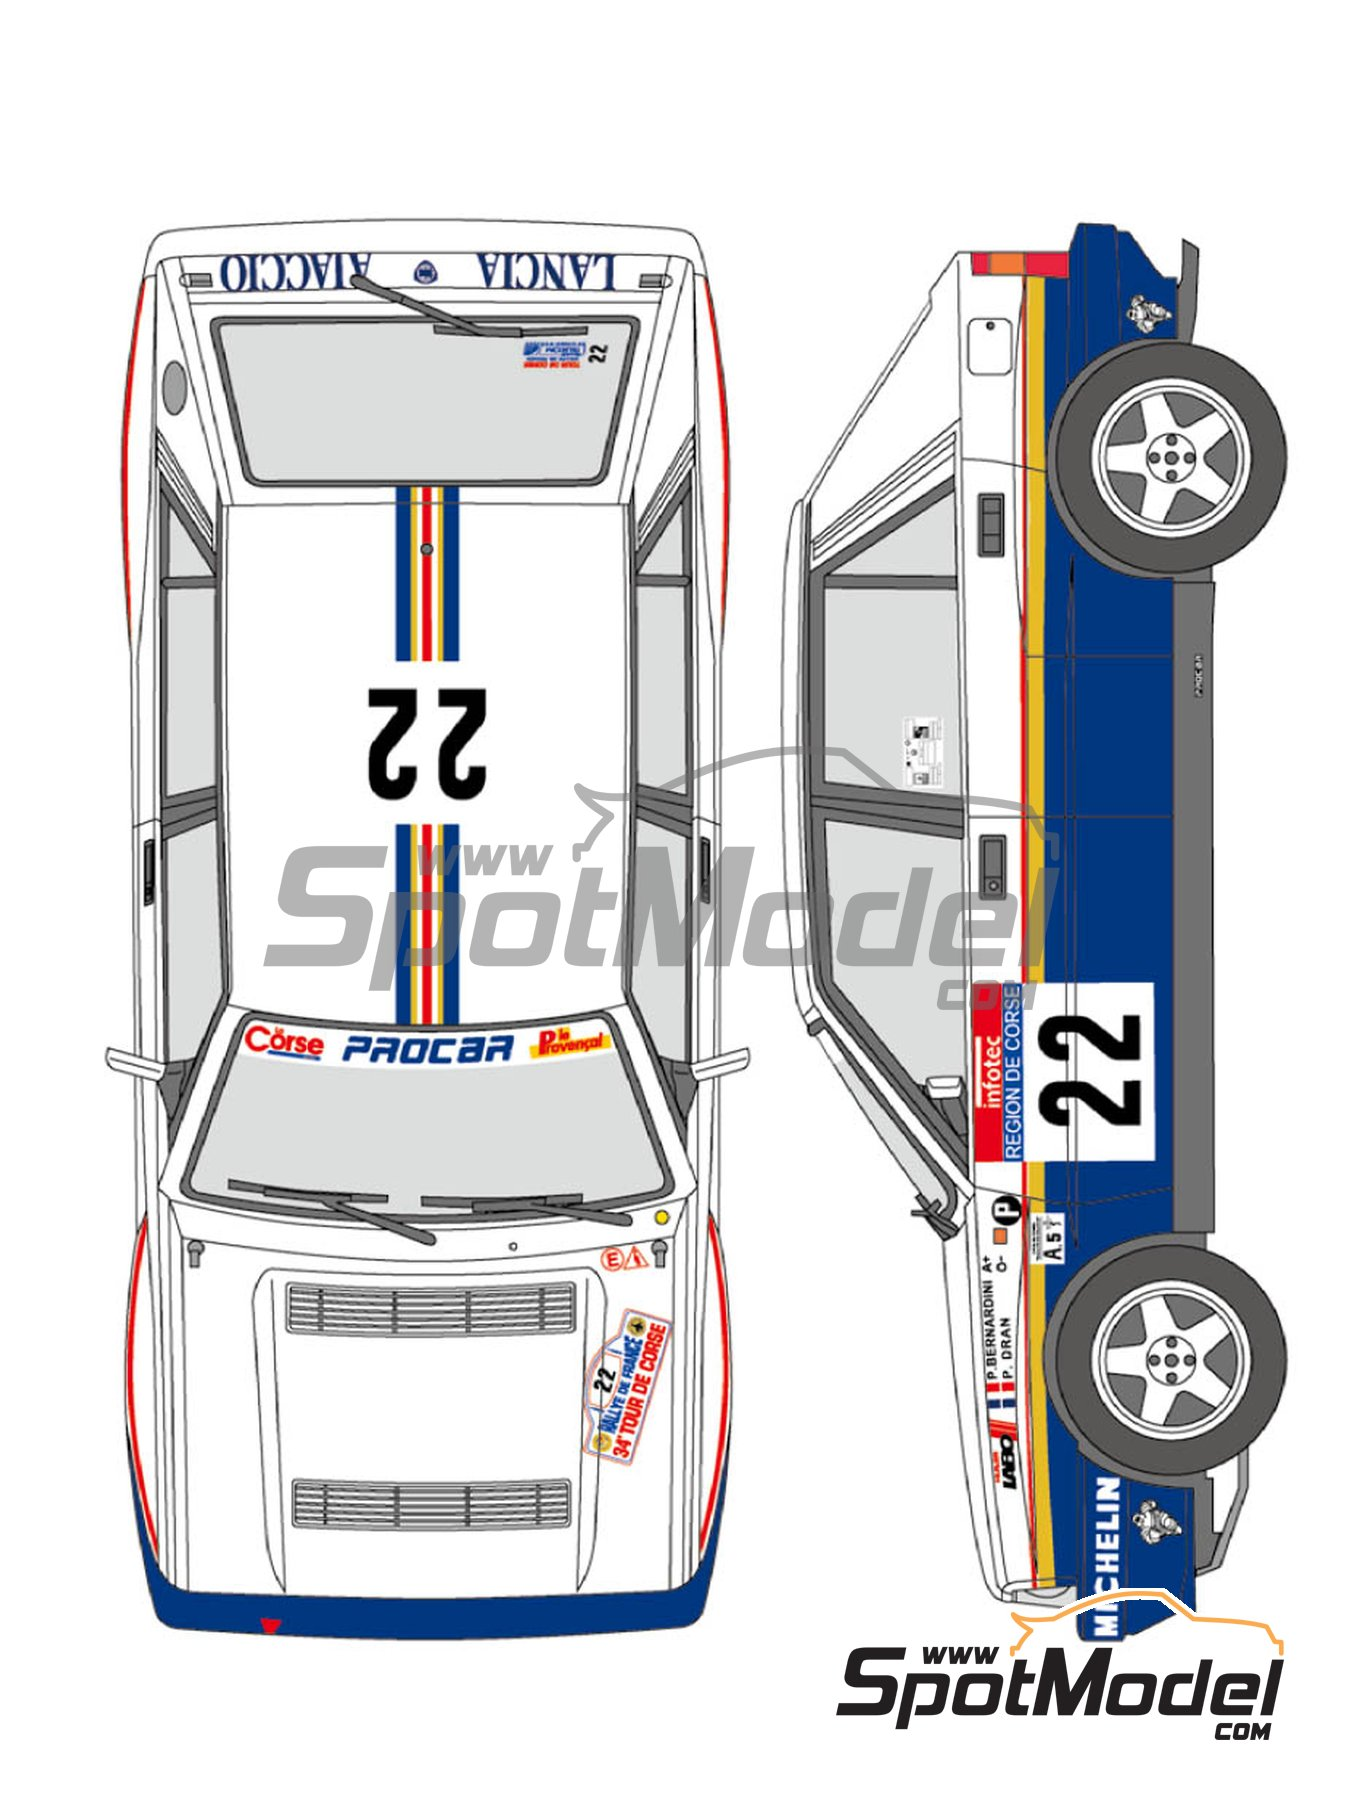 Lancia Delta HF Integrale 16v - Tour de Corse 1990 | Marking / livery in 1/24 scale manufactured by Shunko Models (ref. SHK-D334) image